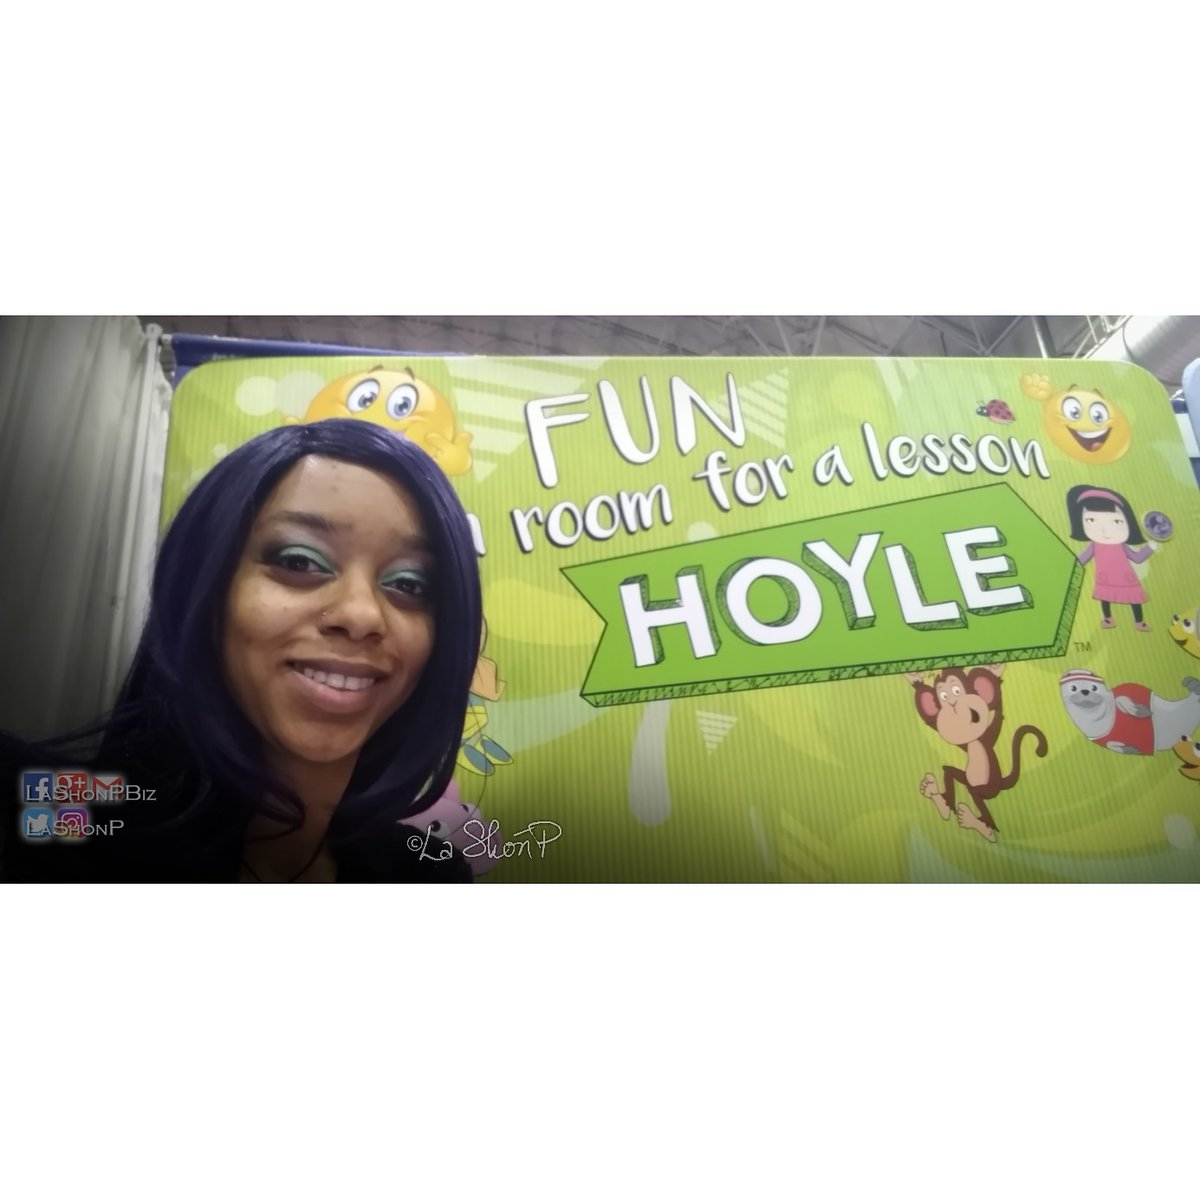 #LatePost from the Toy and Game Expo. Had a blast with Hoyle and Bicycle Cards. #PromoWork #HustleNGlow